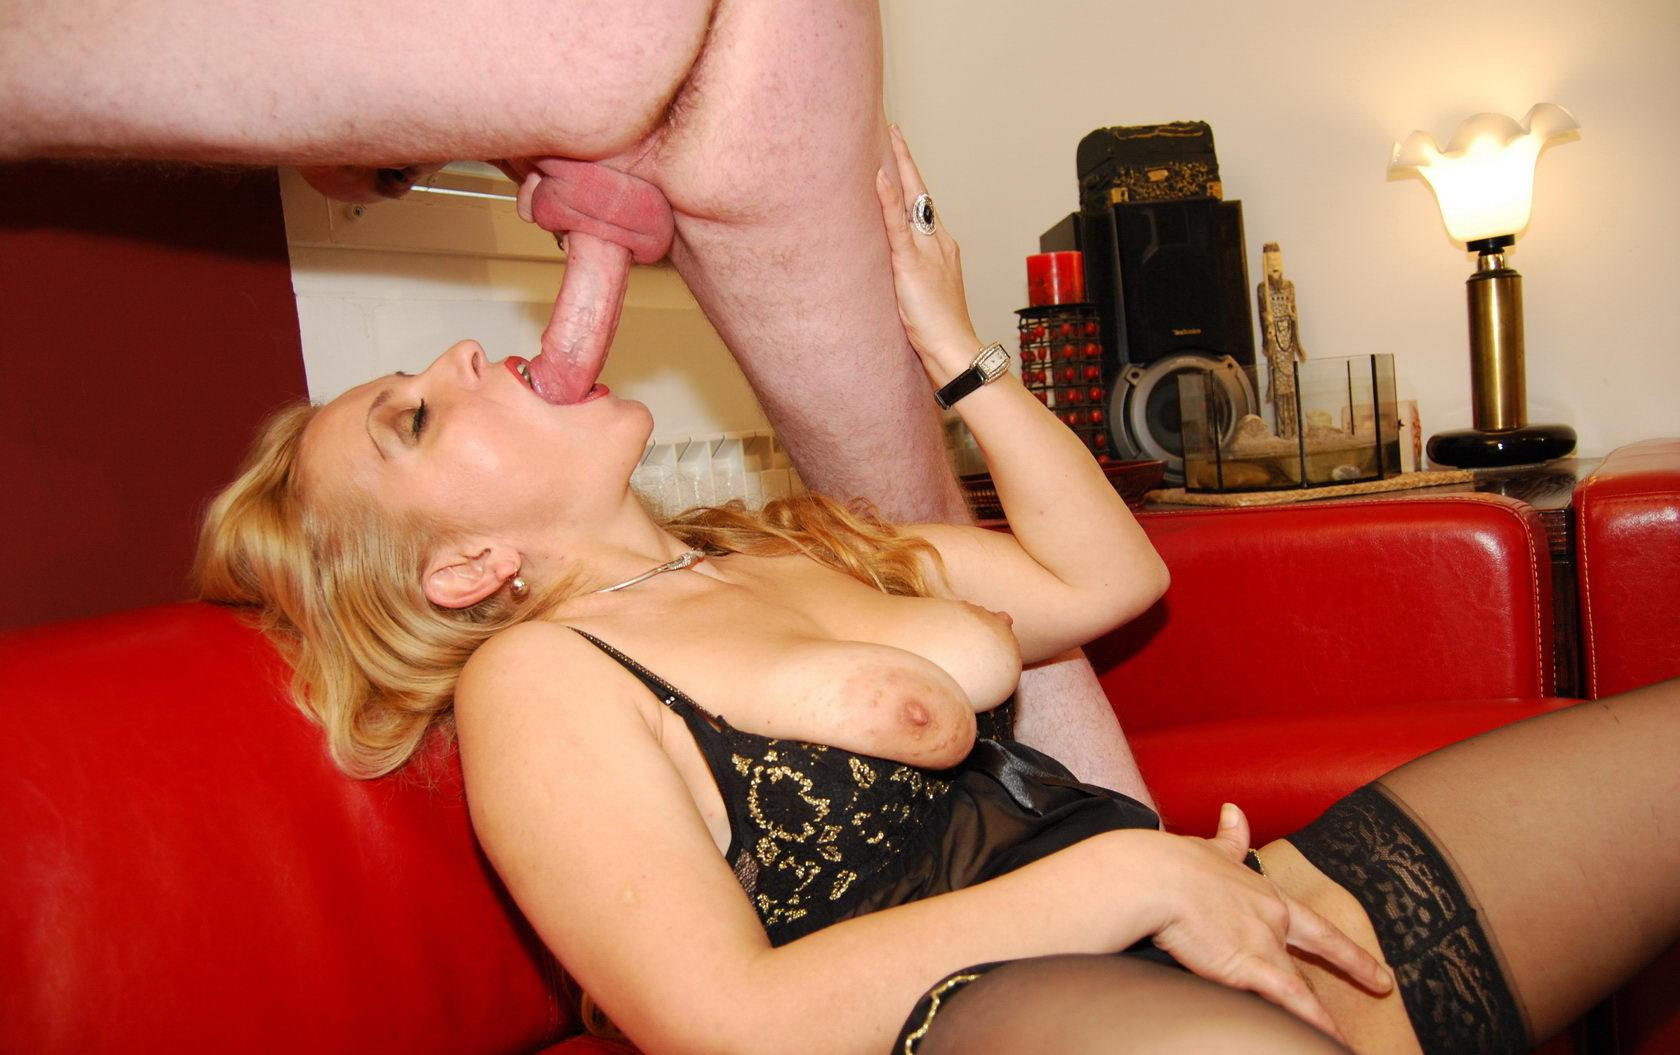 Martha a 51 old rotten SEXY MOM deepthroating her gym teacher